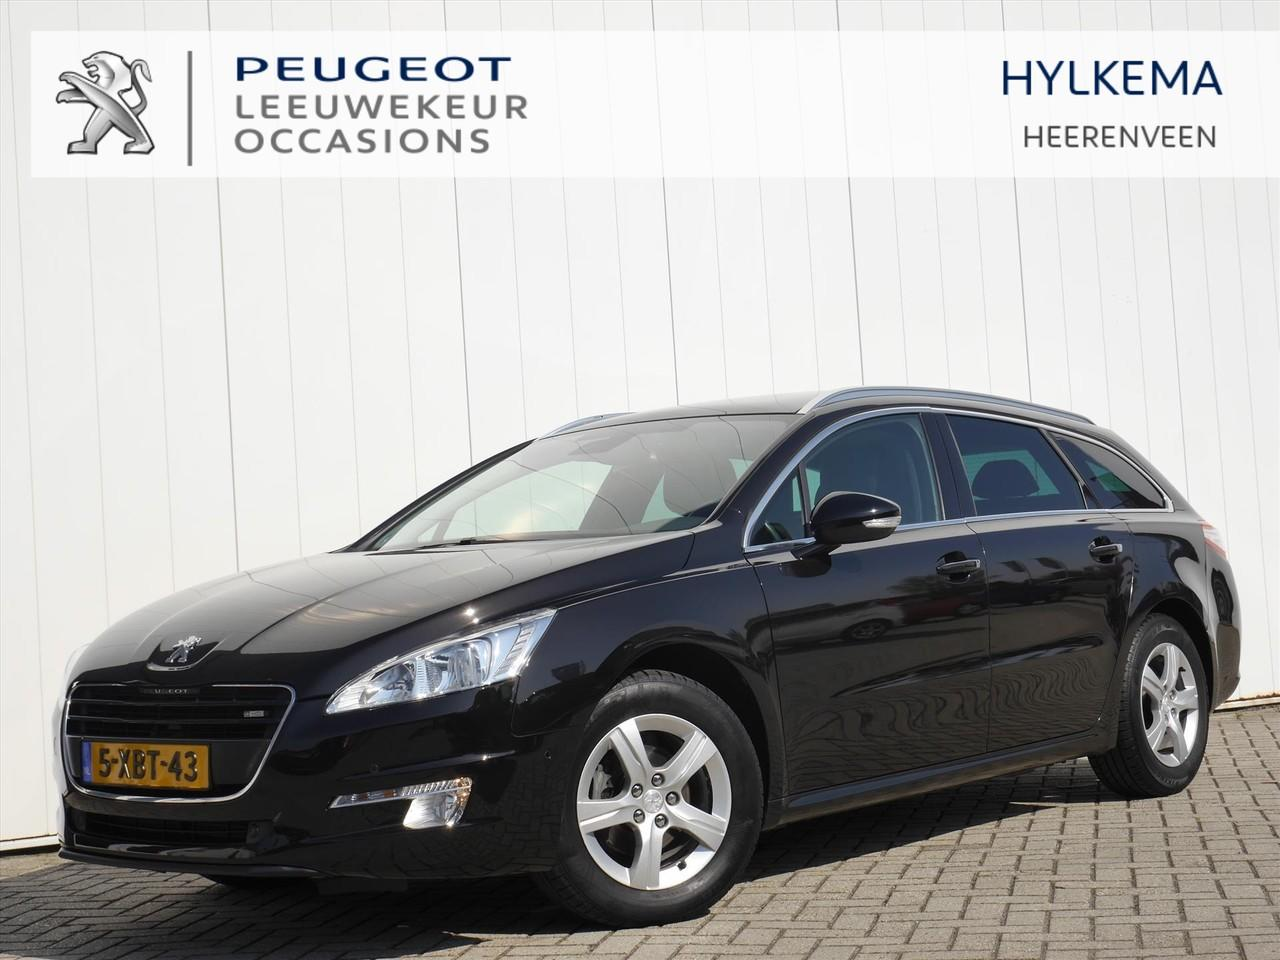 Peugeot 508 Sw blue lease exe. 1.6 hdi 115pk